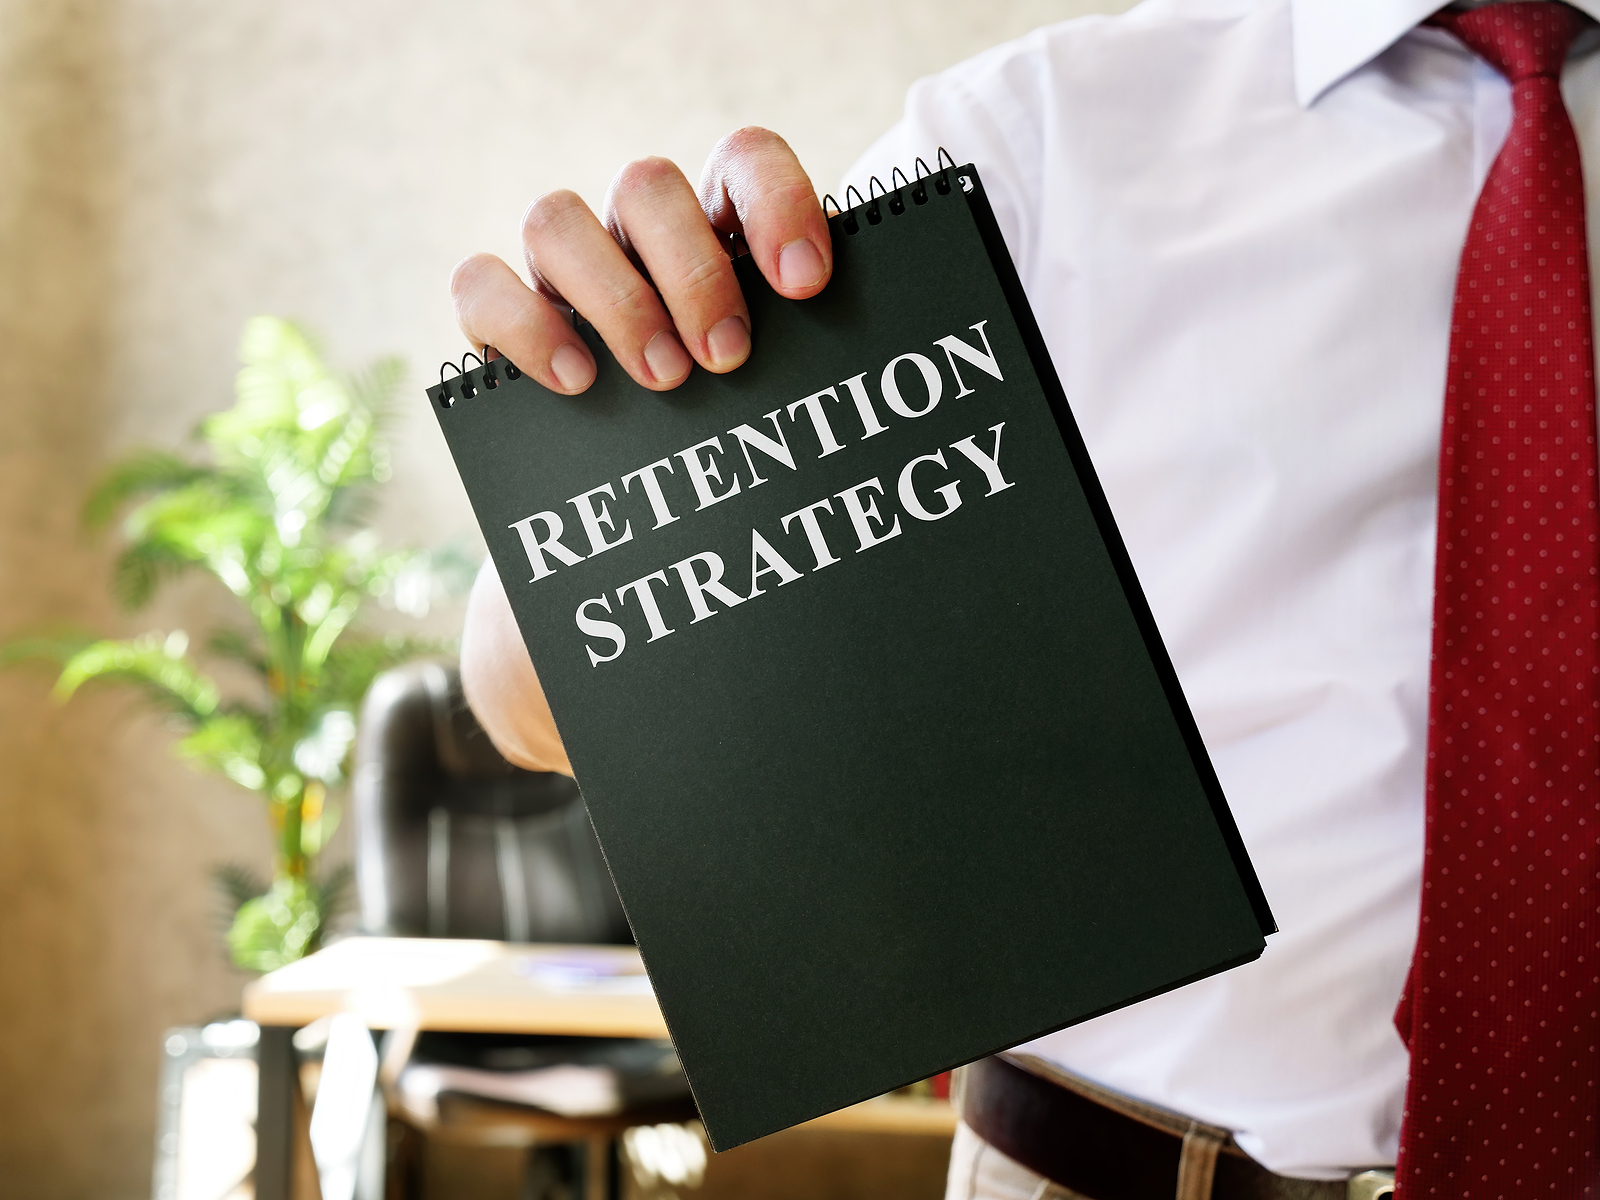 The driver recruiting manager demonstrates the retention strategy plan.